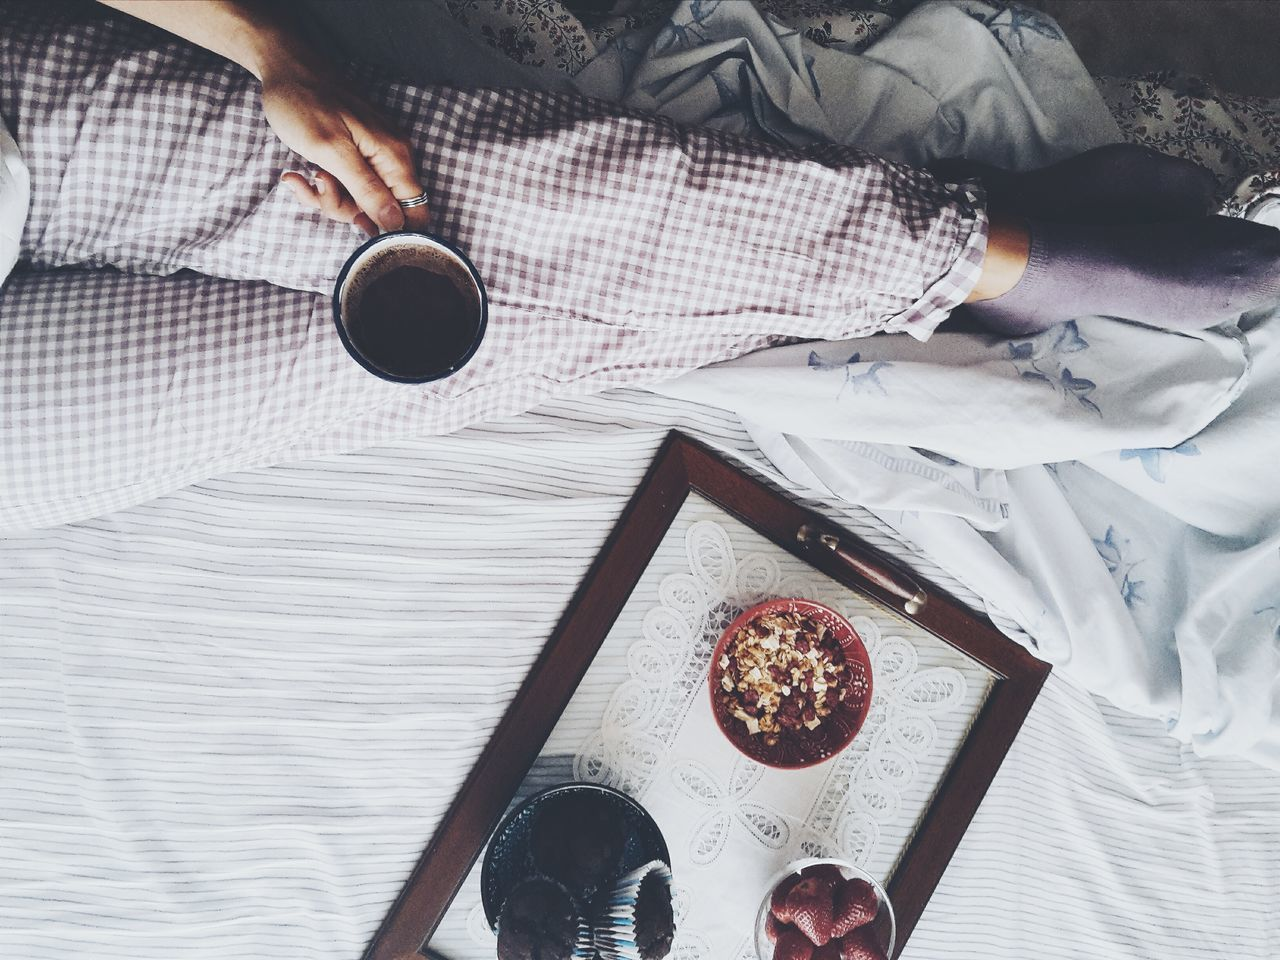 Sunday morning My Favorite Breakfast Moment Food And Drink Breakfast View From Above Flatlay Chocolate On The Bed Hand Breakfast In Bed Fruits Muesli Muffins Relaxing Market Reviewers' Top Picks